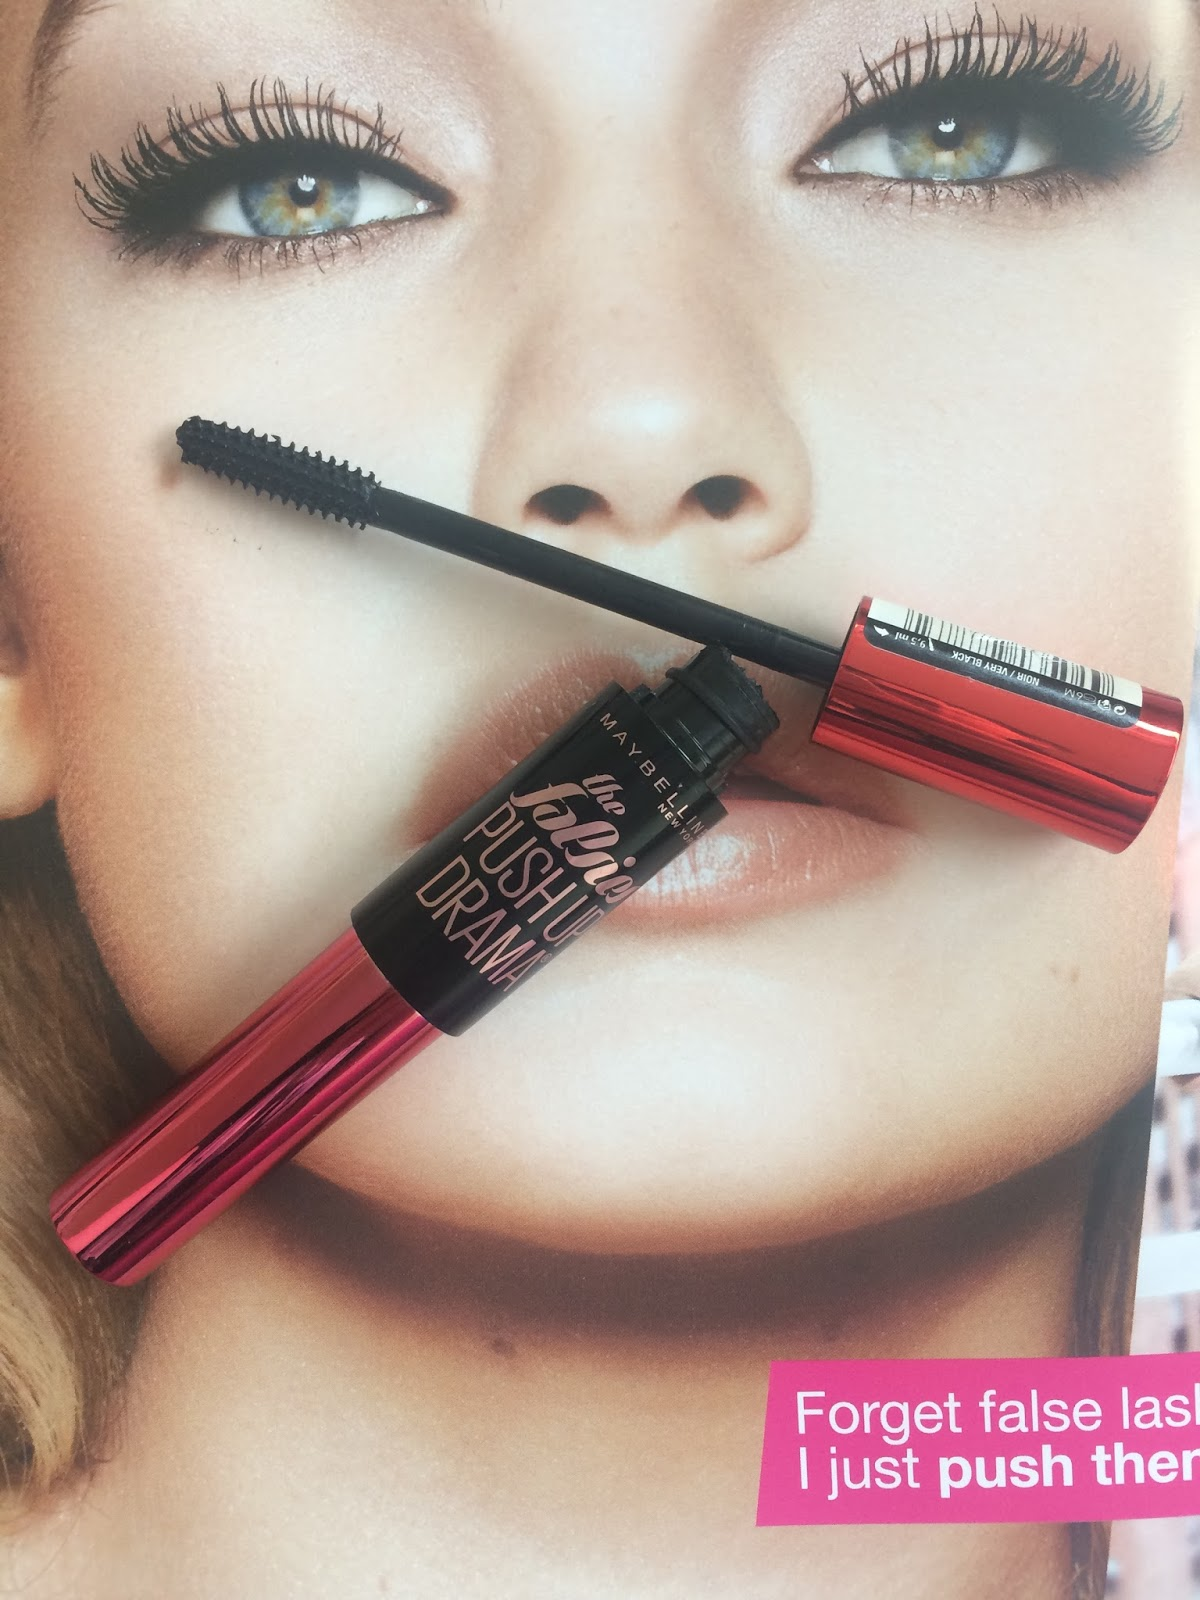 Maybelline The Falsies Push Up Drama Mascara Review | The ...